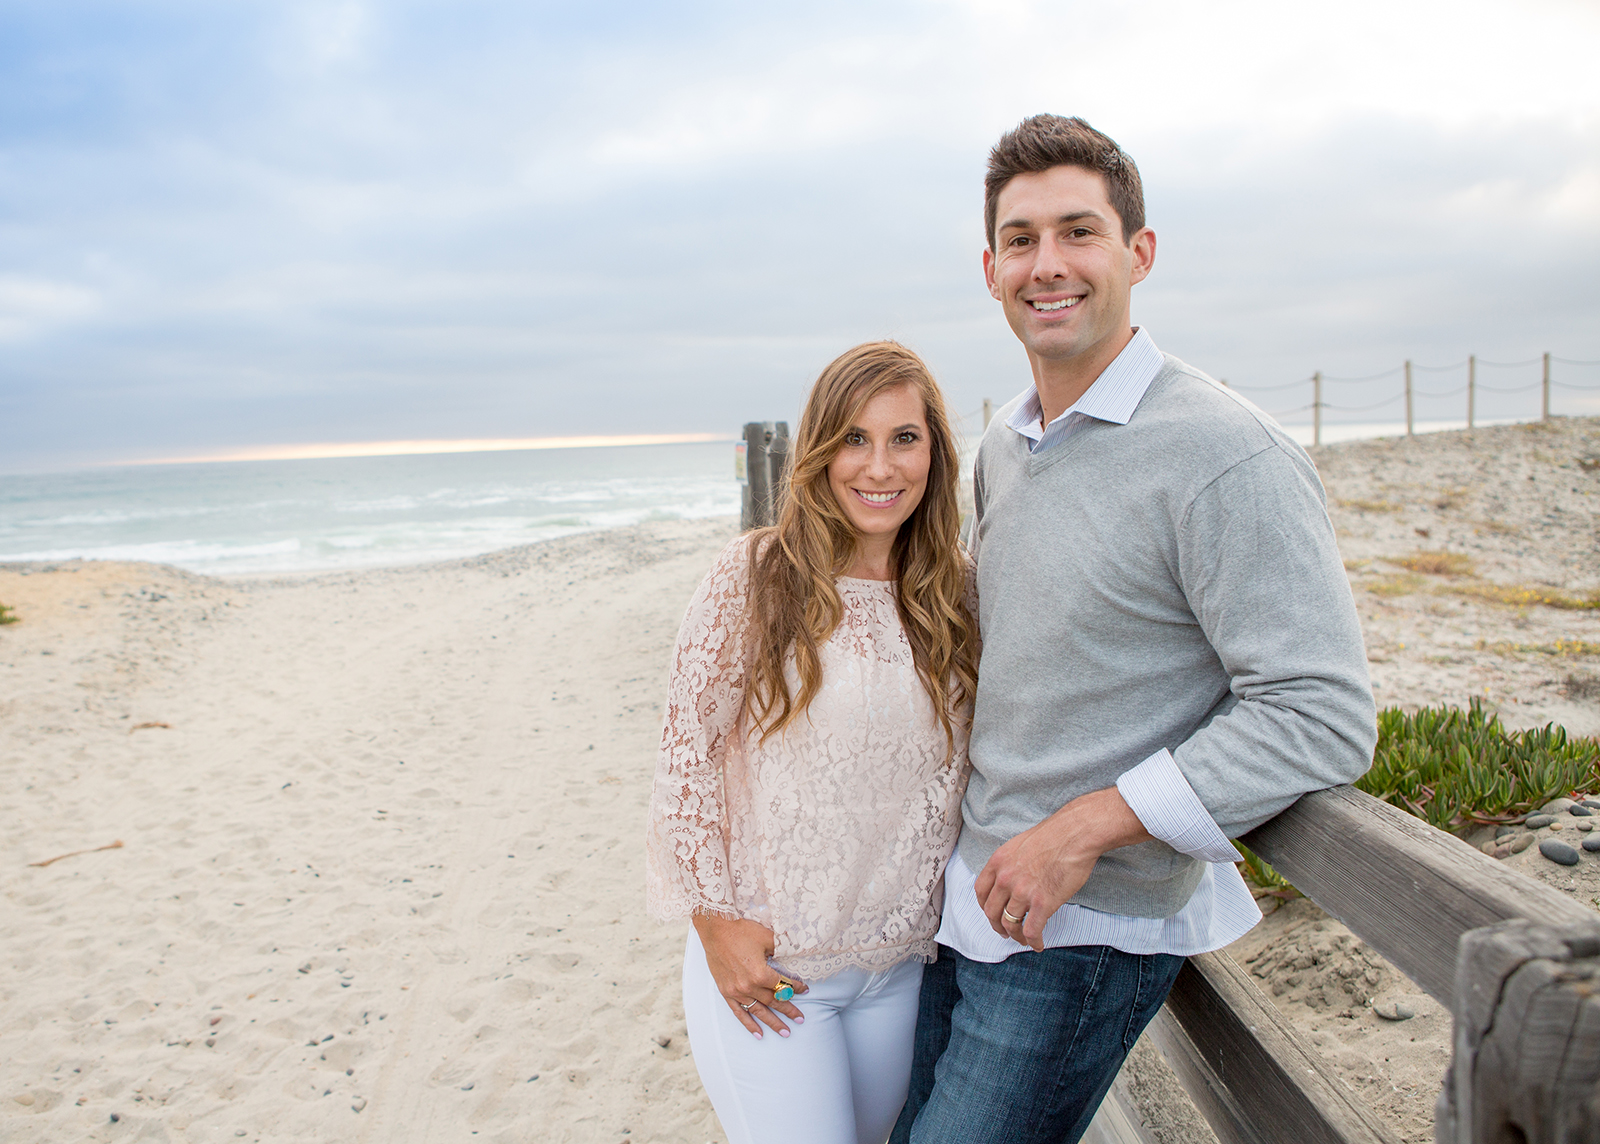 family photos taken on the beach in Carlsbad by a professional photographer in San Diego and Oceanside.